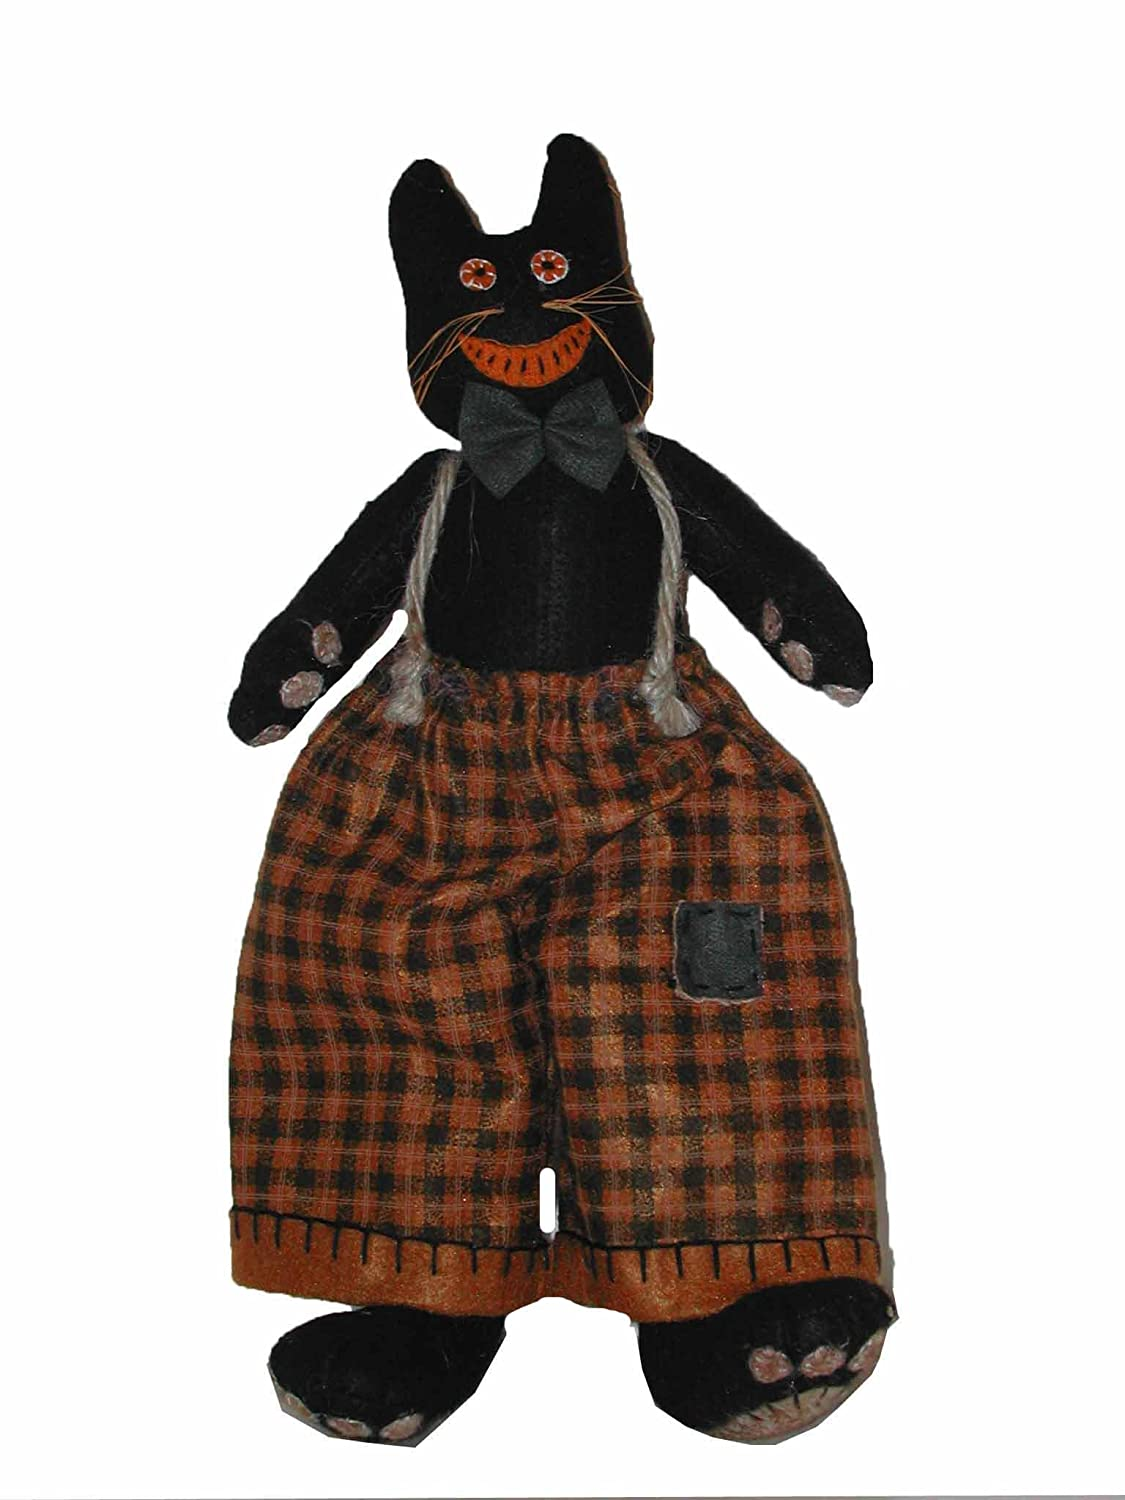 Craft Outlet Inc Black Cat with Orange in Plaid Overalls Figurine Multi COIIN F50362